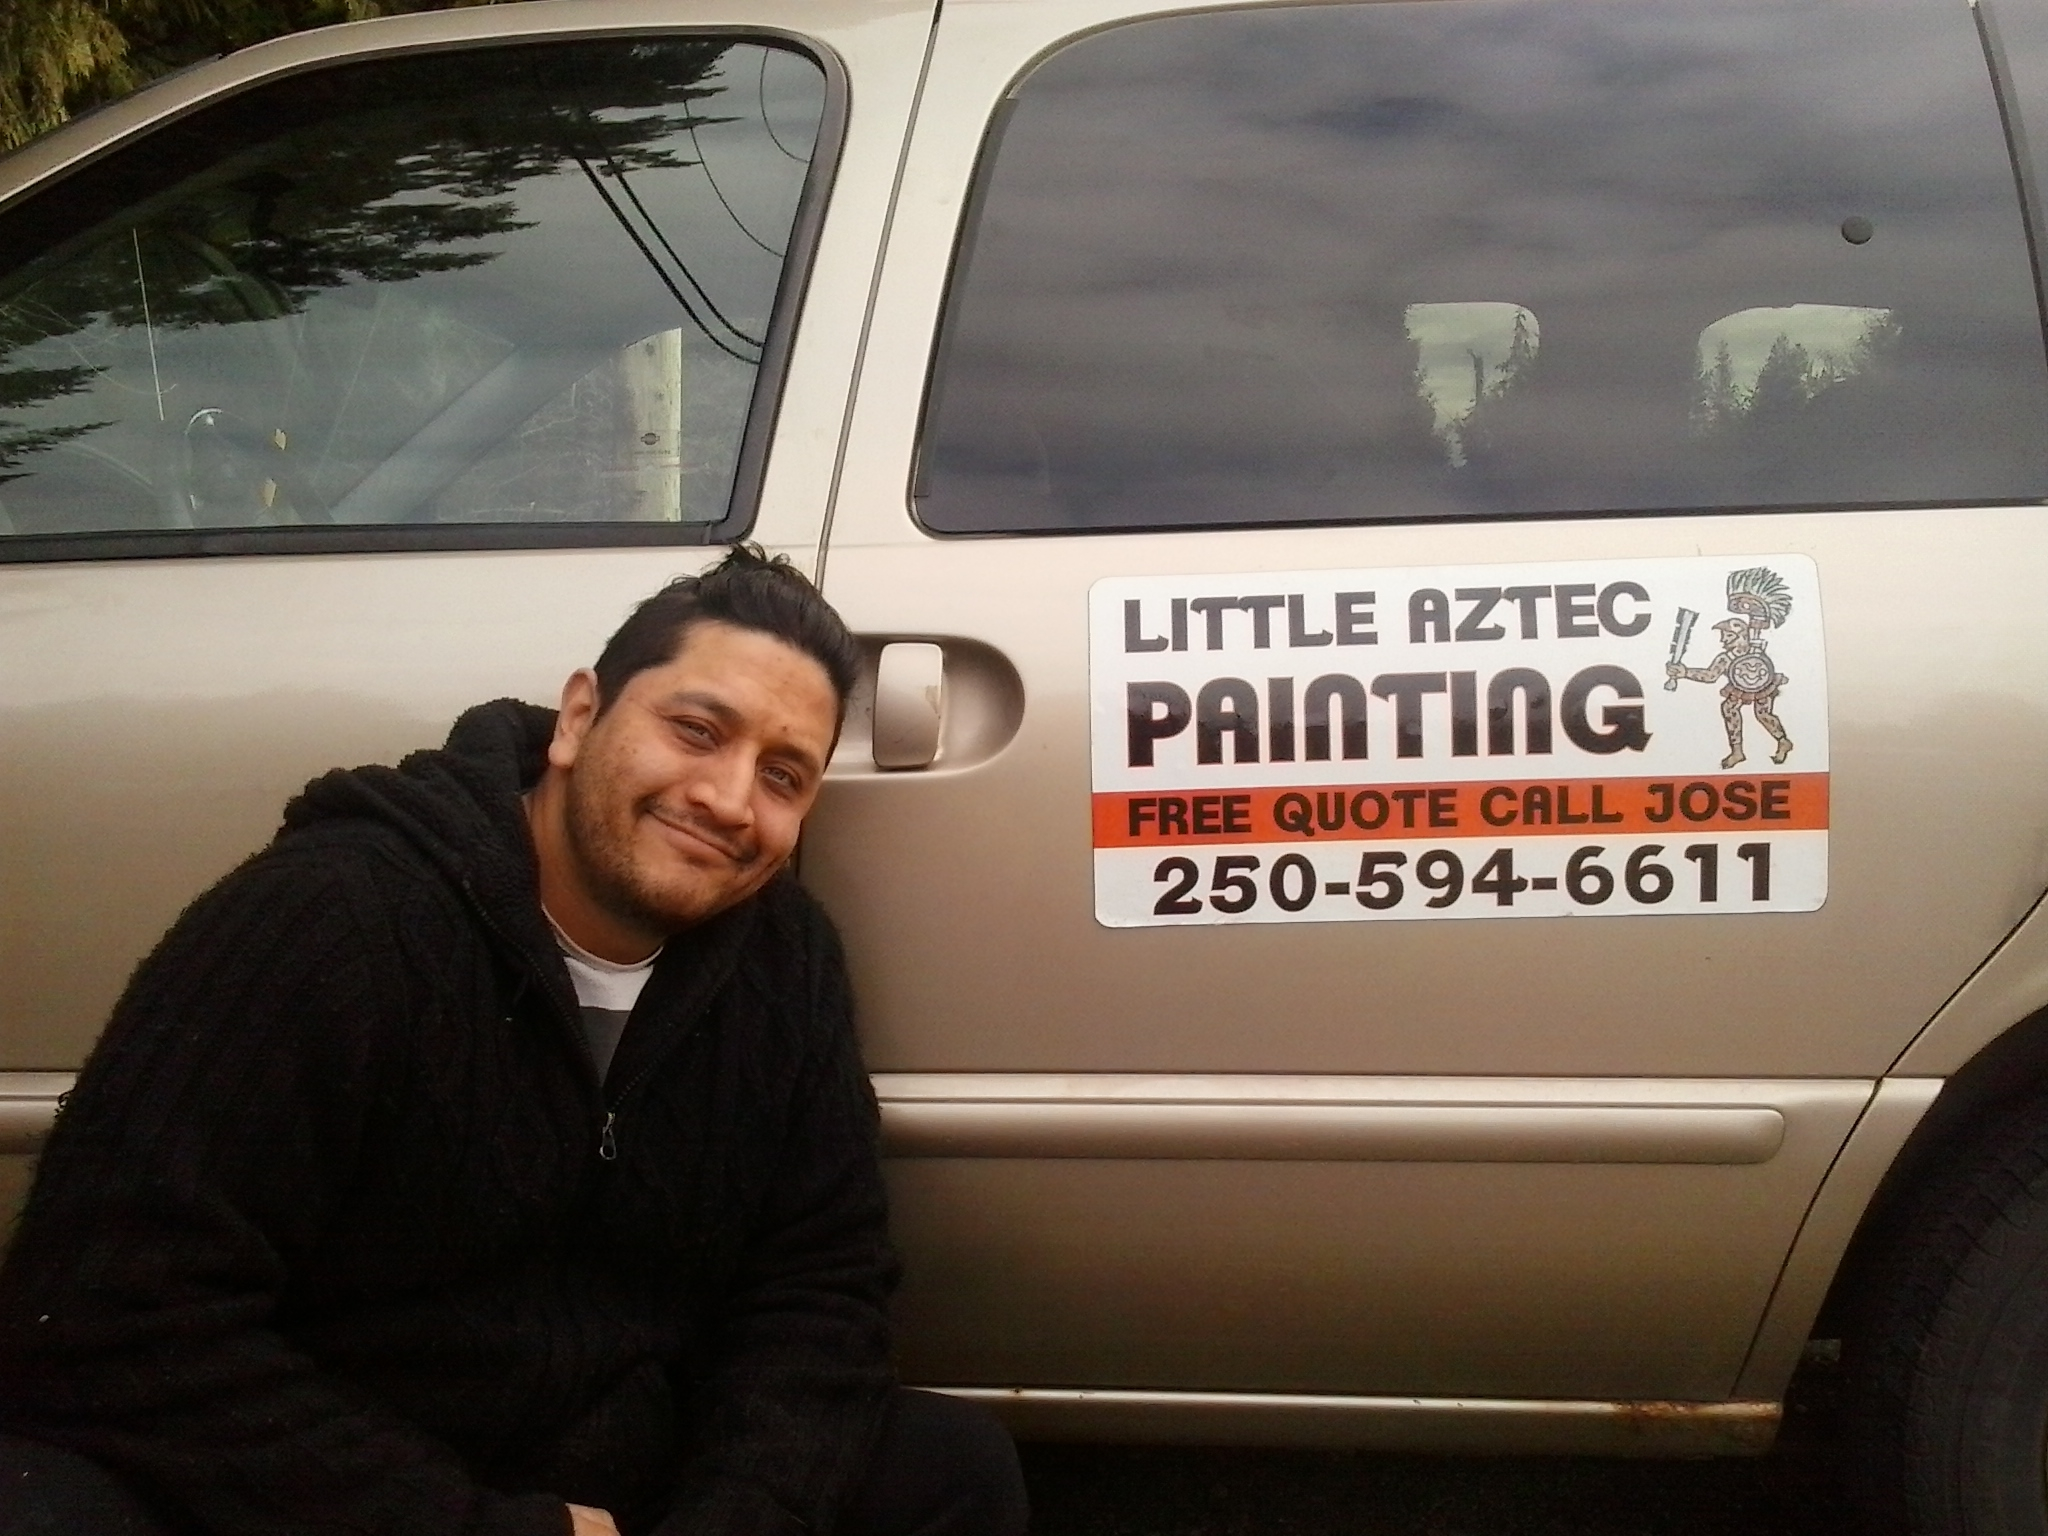 Little Aztec Painting Port Alberni (778)419-1616